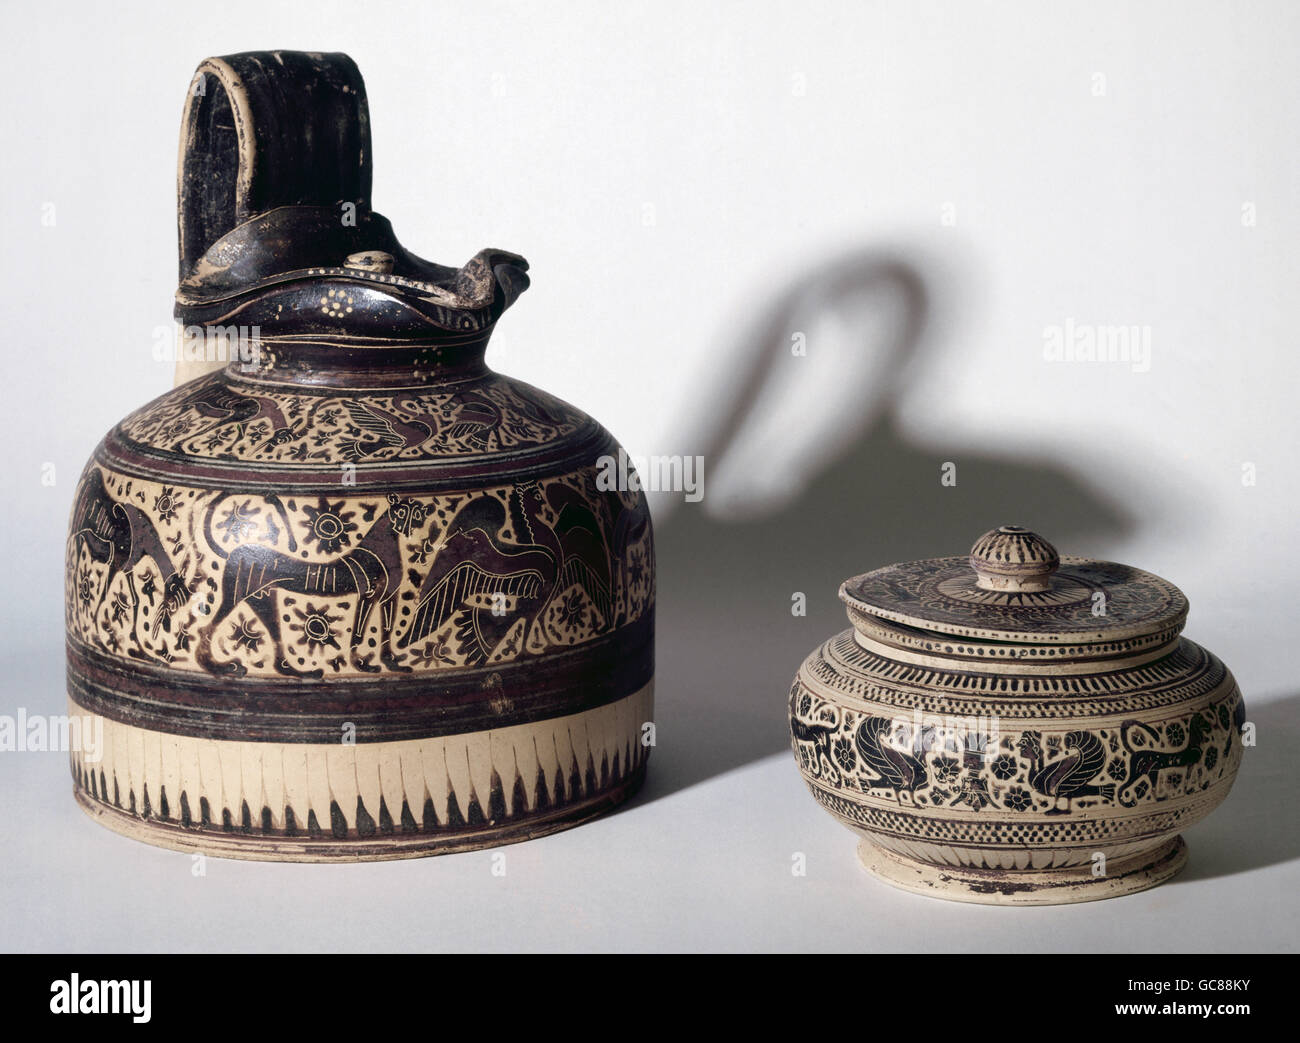 fine arts, ancient world, Greece, craft / handcraft, vessel, Corinthian jug and pyxis, circa 600 BC, ceramics, national - Stock Image